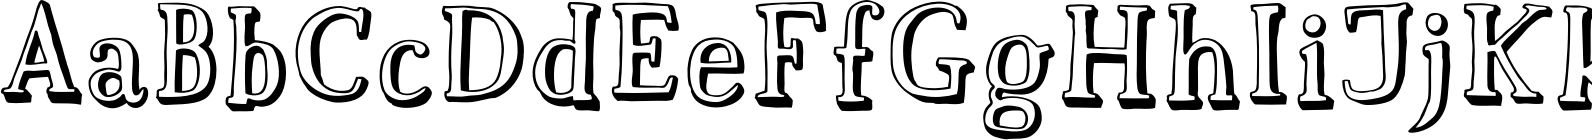 Mr Anteater Regular Font